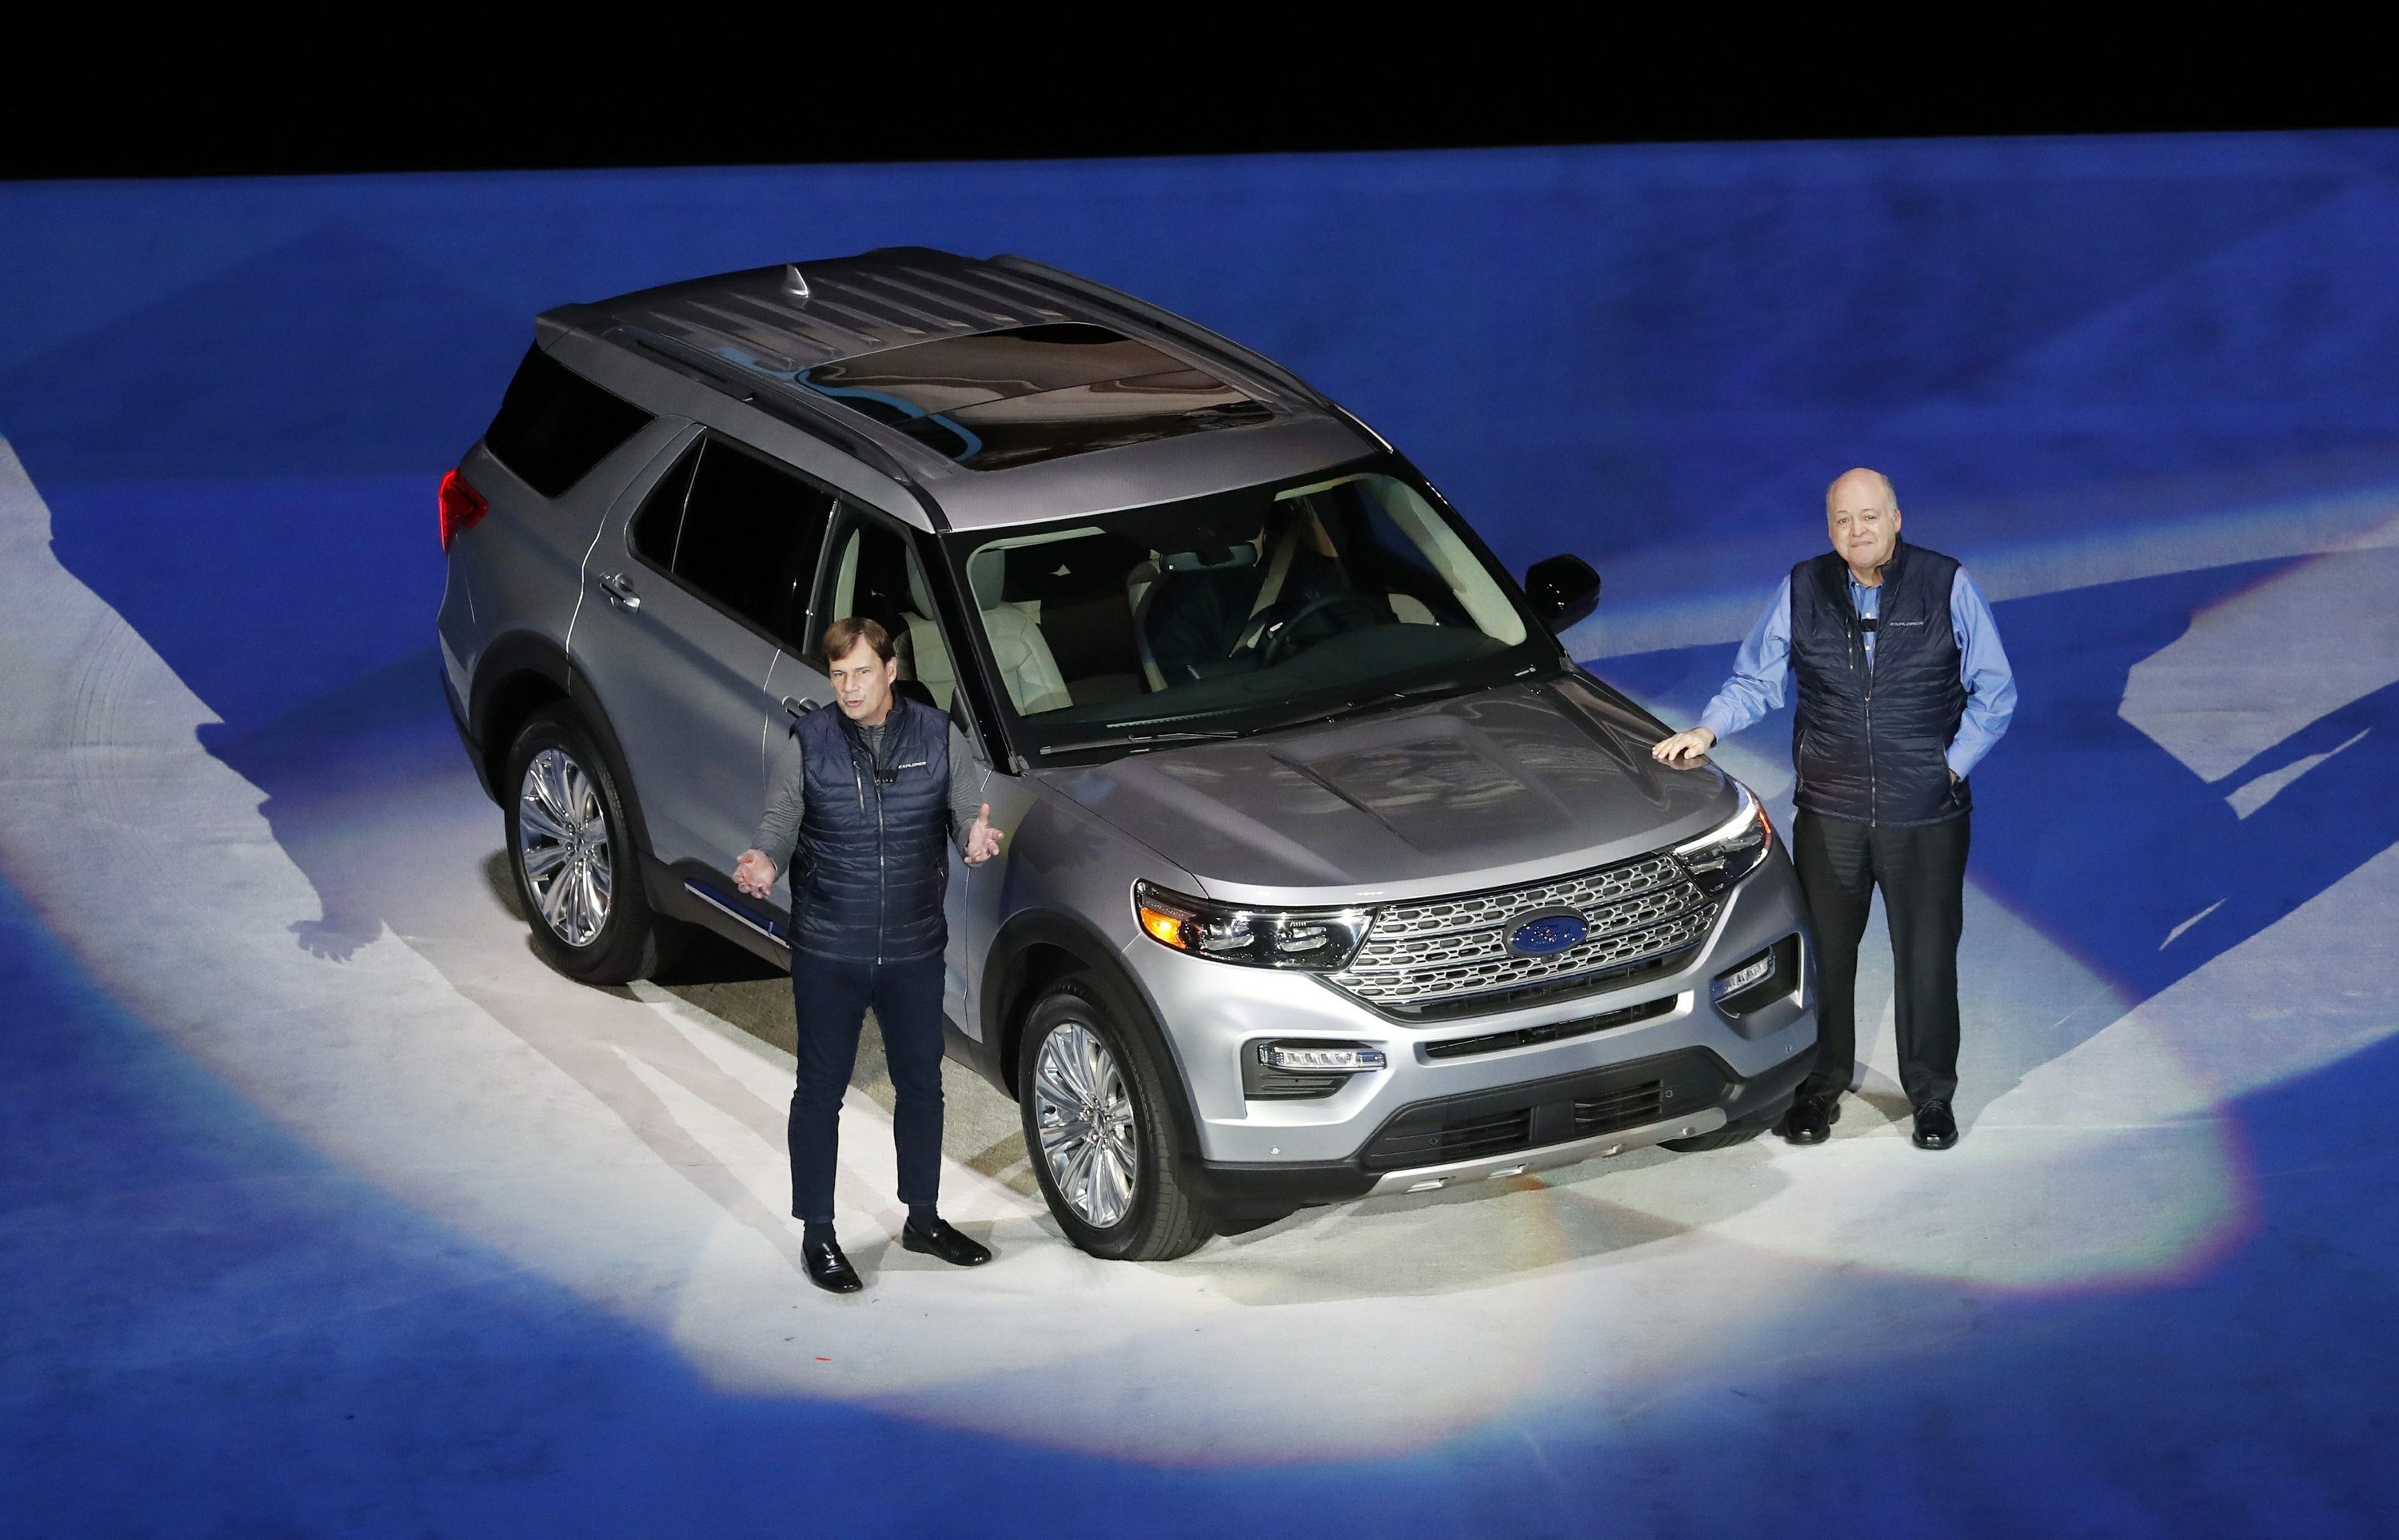 Ford and Cadillac SUVs, Toyota sports car star at auto show - The Associated Press thumbnail